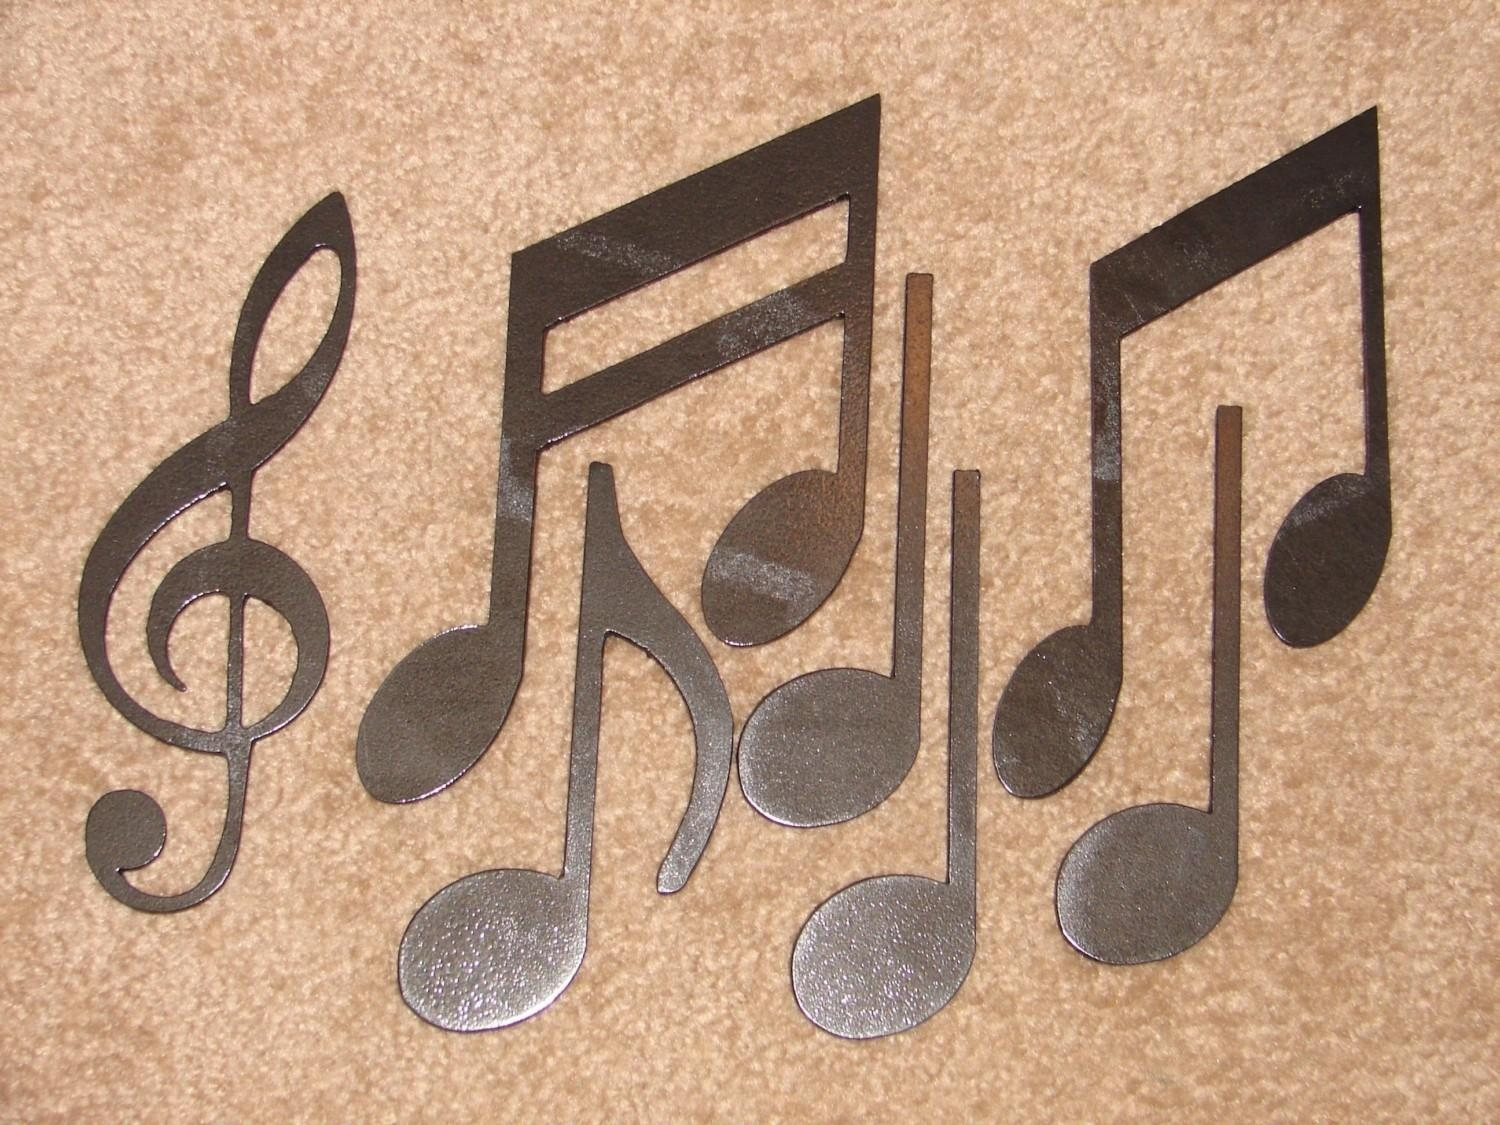 Metal Wall Art Decor Music Notes Musical Note Patio Throughout Music Note Wall Art Decor (View 4 of 20)